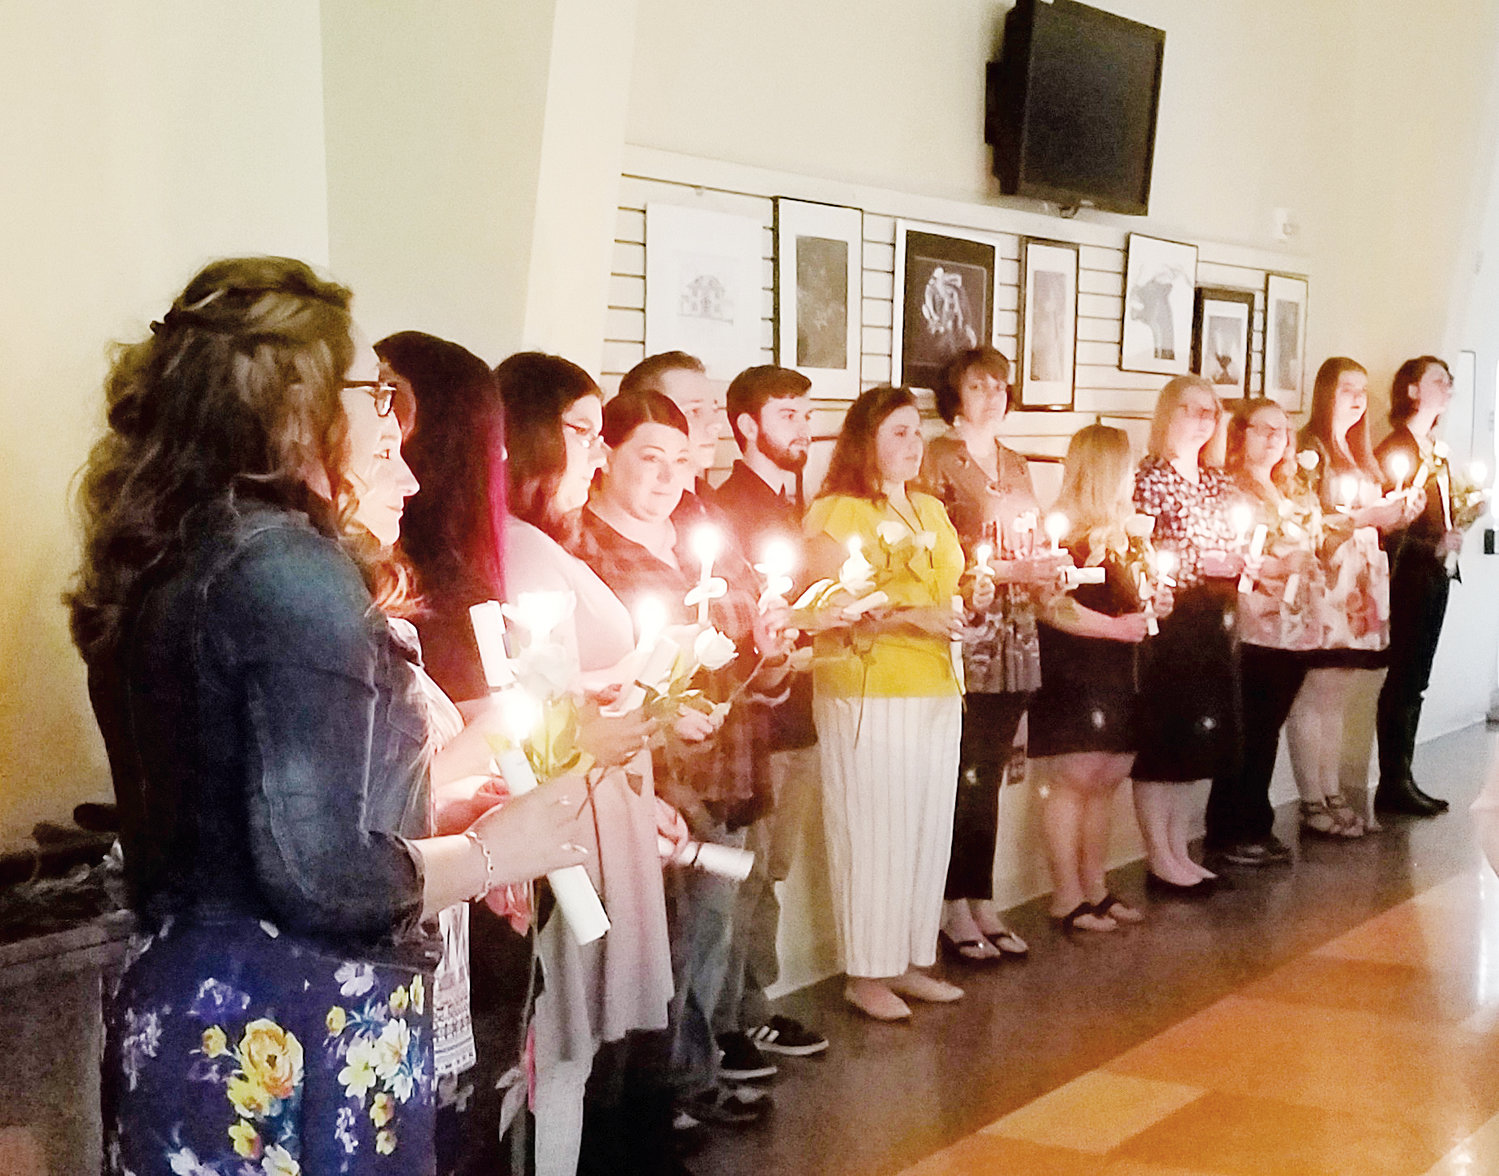 New inductees in Phi Theta Kappa at Piedmont Community College take part in their induction ceremony last month.